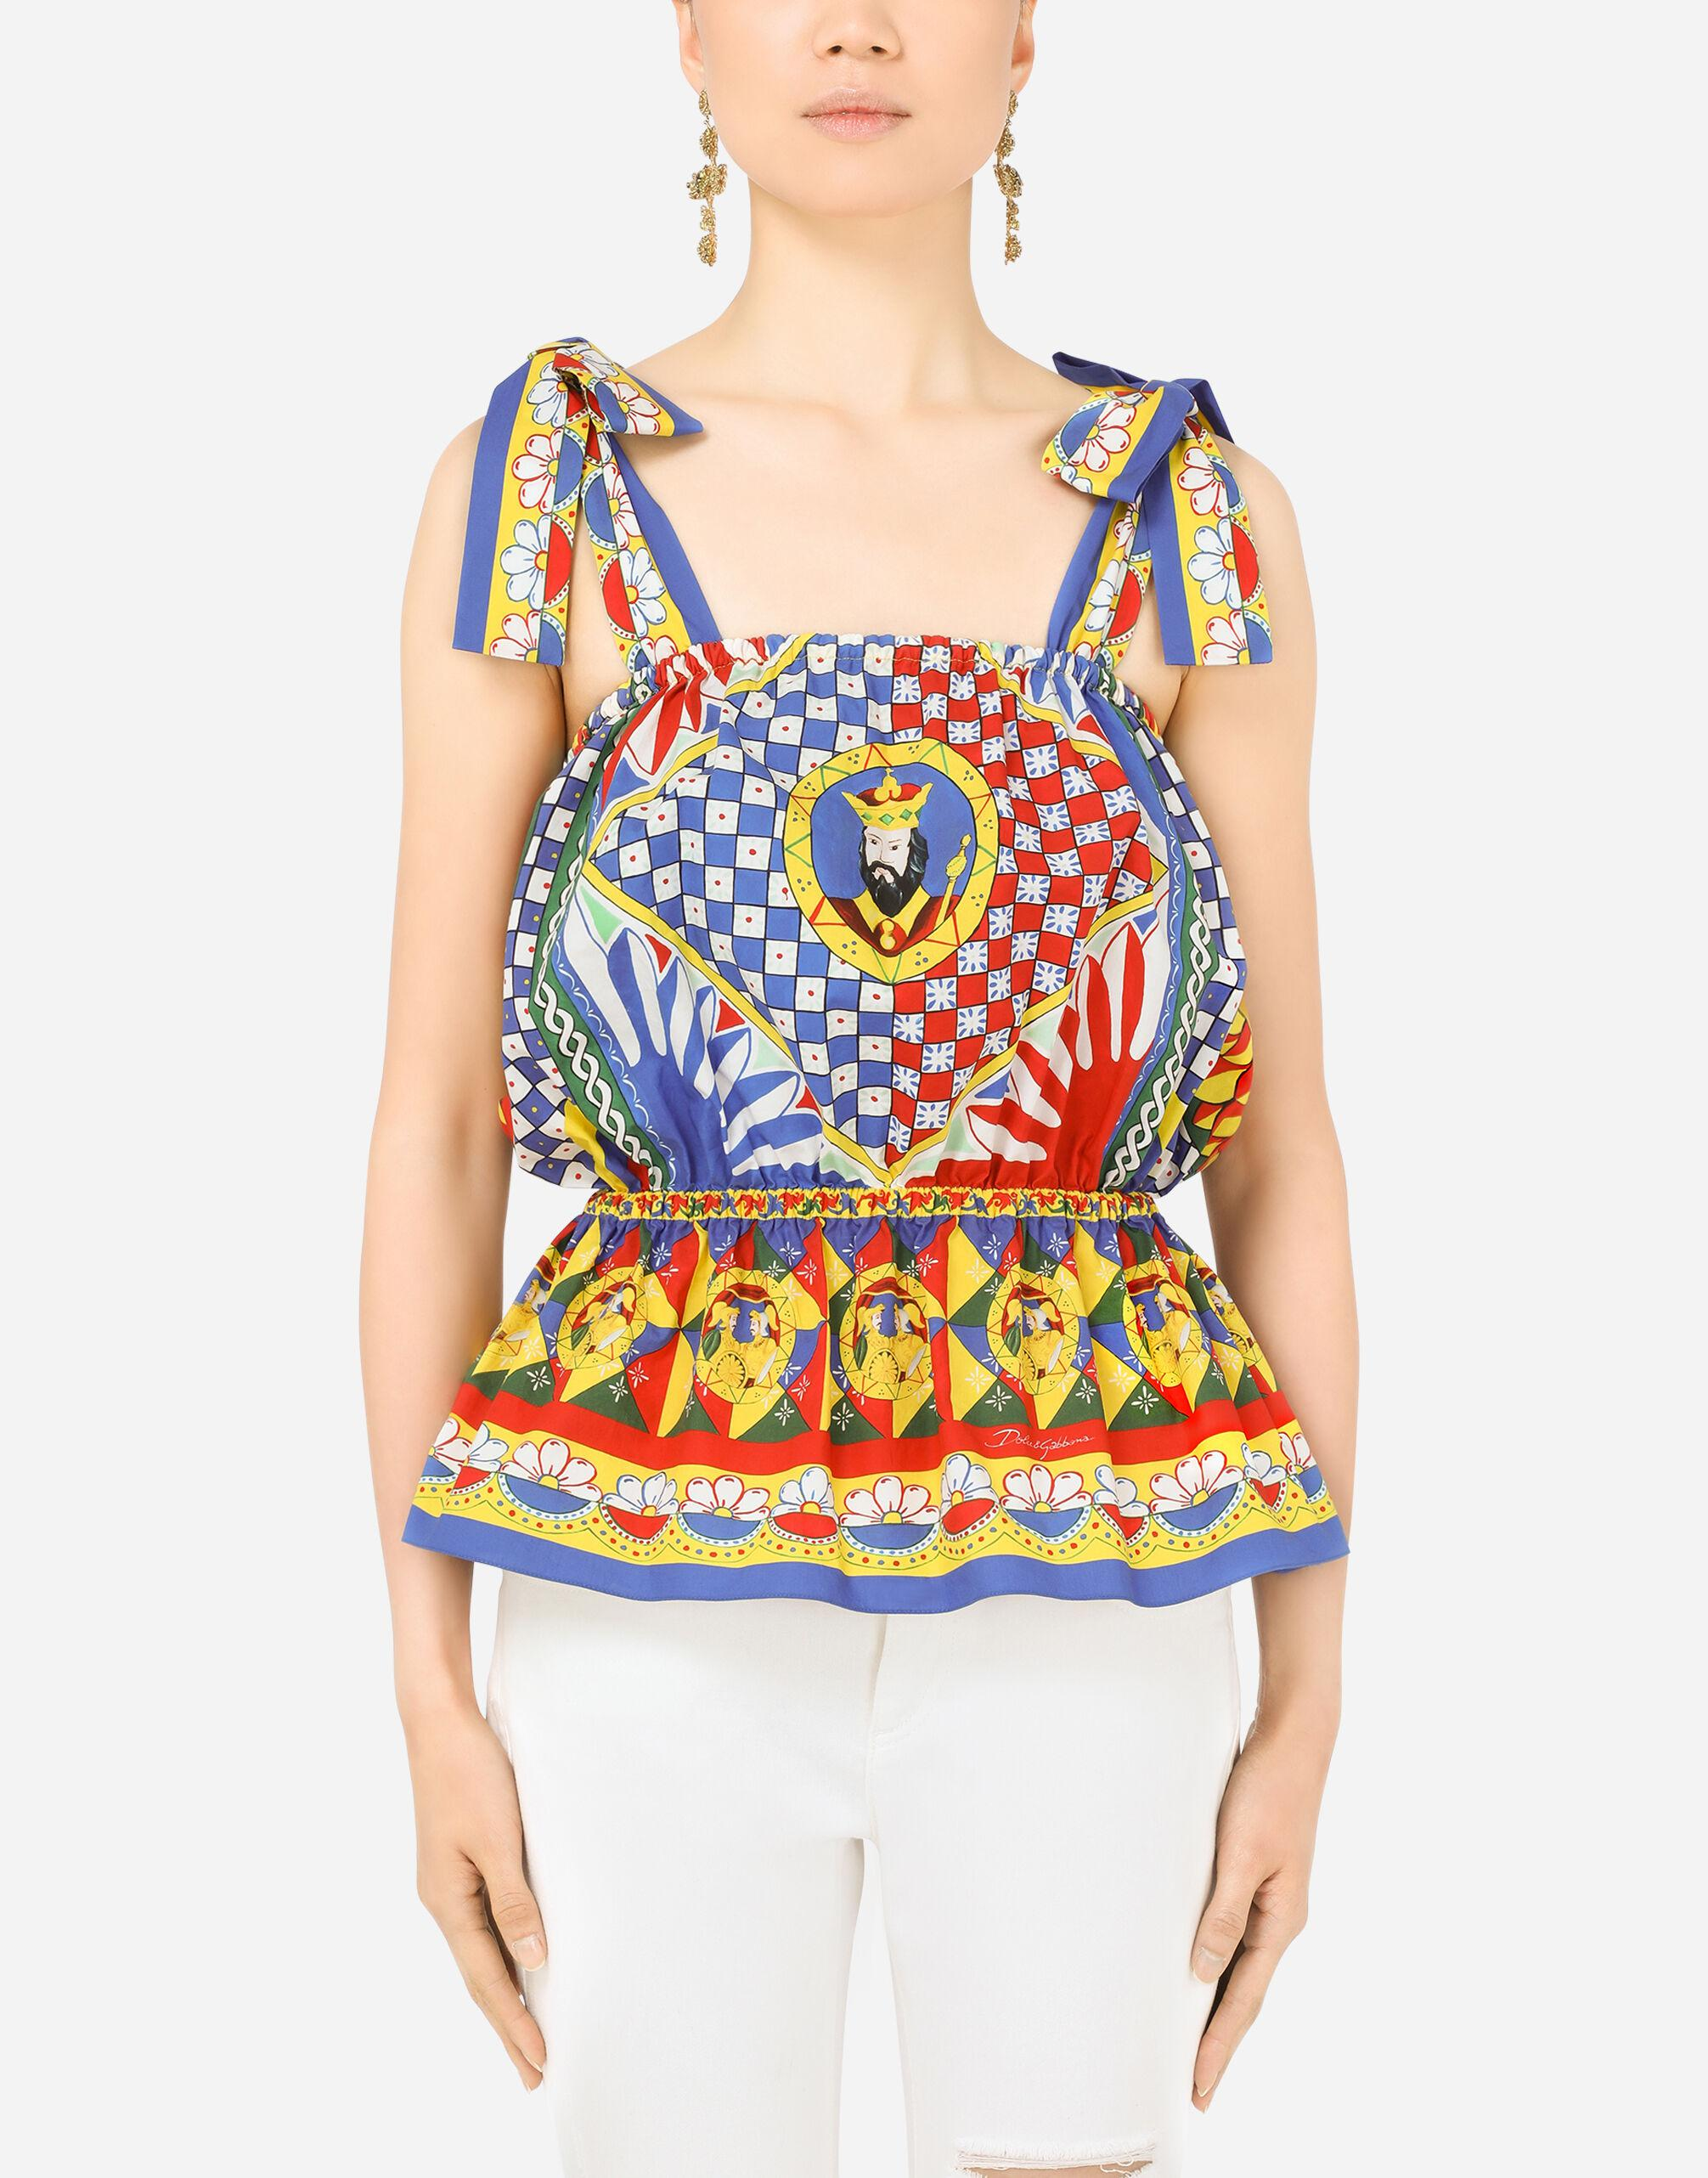 Carretto-print poplin top with ruffled detailing